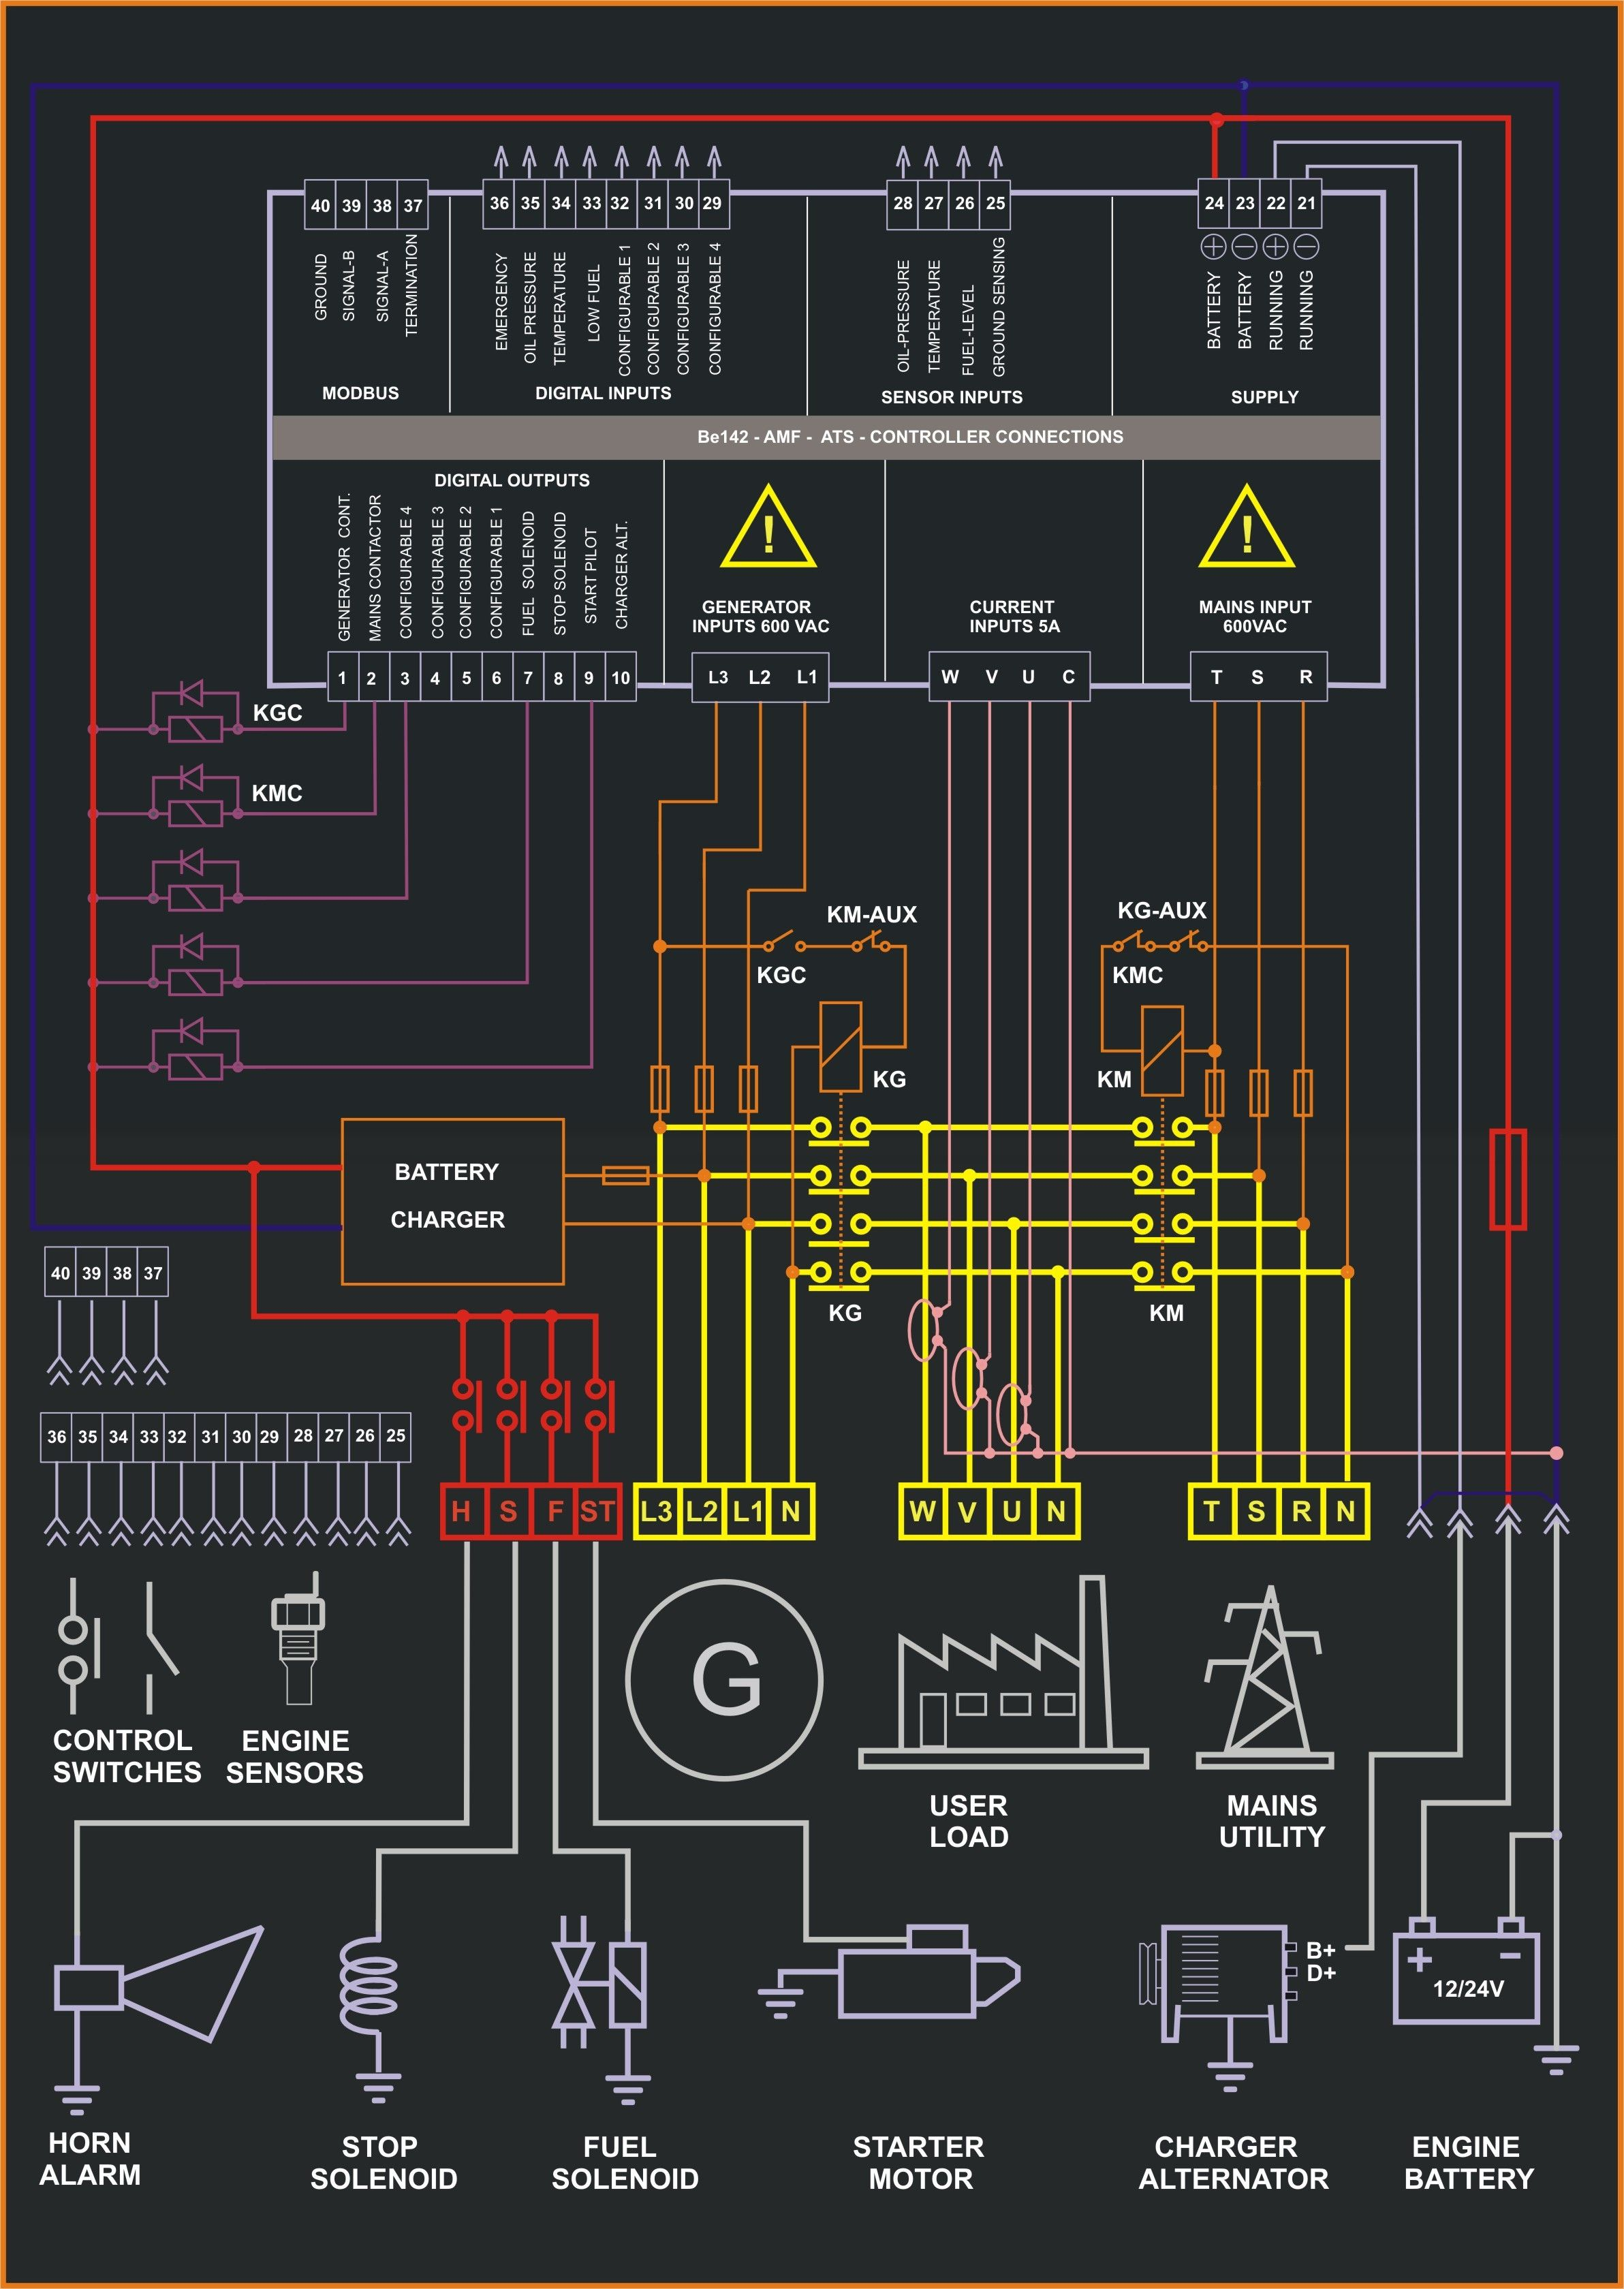 electrical panel board wiring diagram pdf fresh 41 awesome circuit breaker theory pdf [ 2384 x 3360 Pixel ]